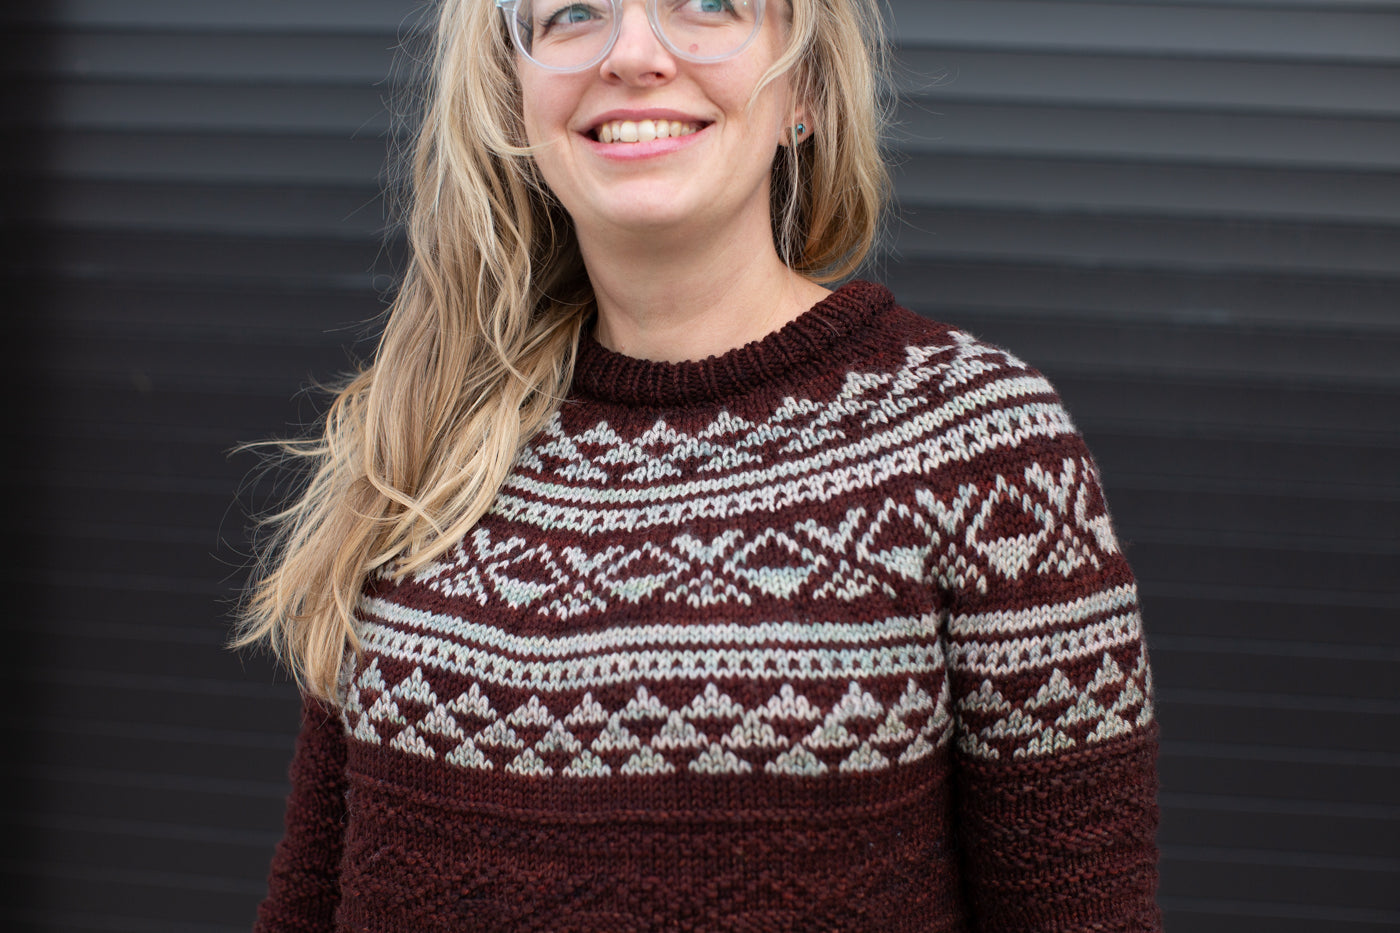 A women wearing a burgundy sweater with mint green accents.  The photograph is up close to show the pattern of the knitting.  The photograph is cropped from the women's forehead to elbows.